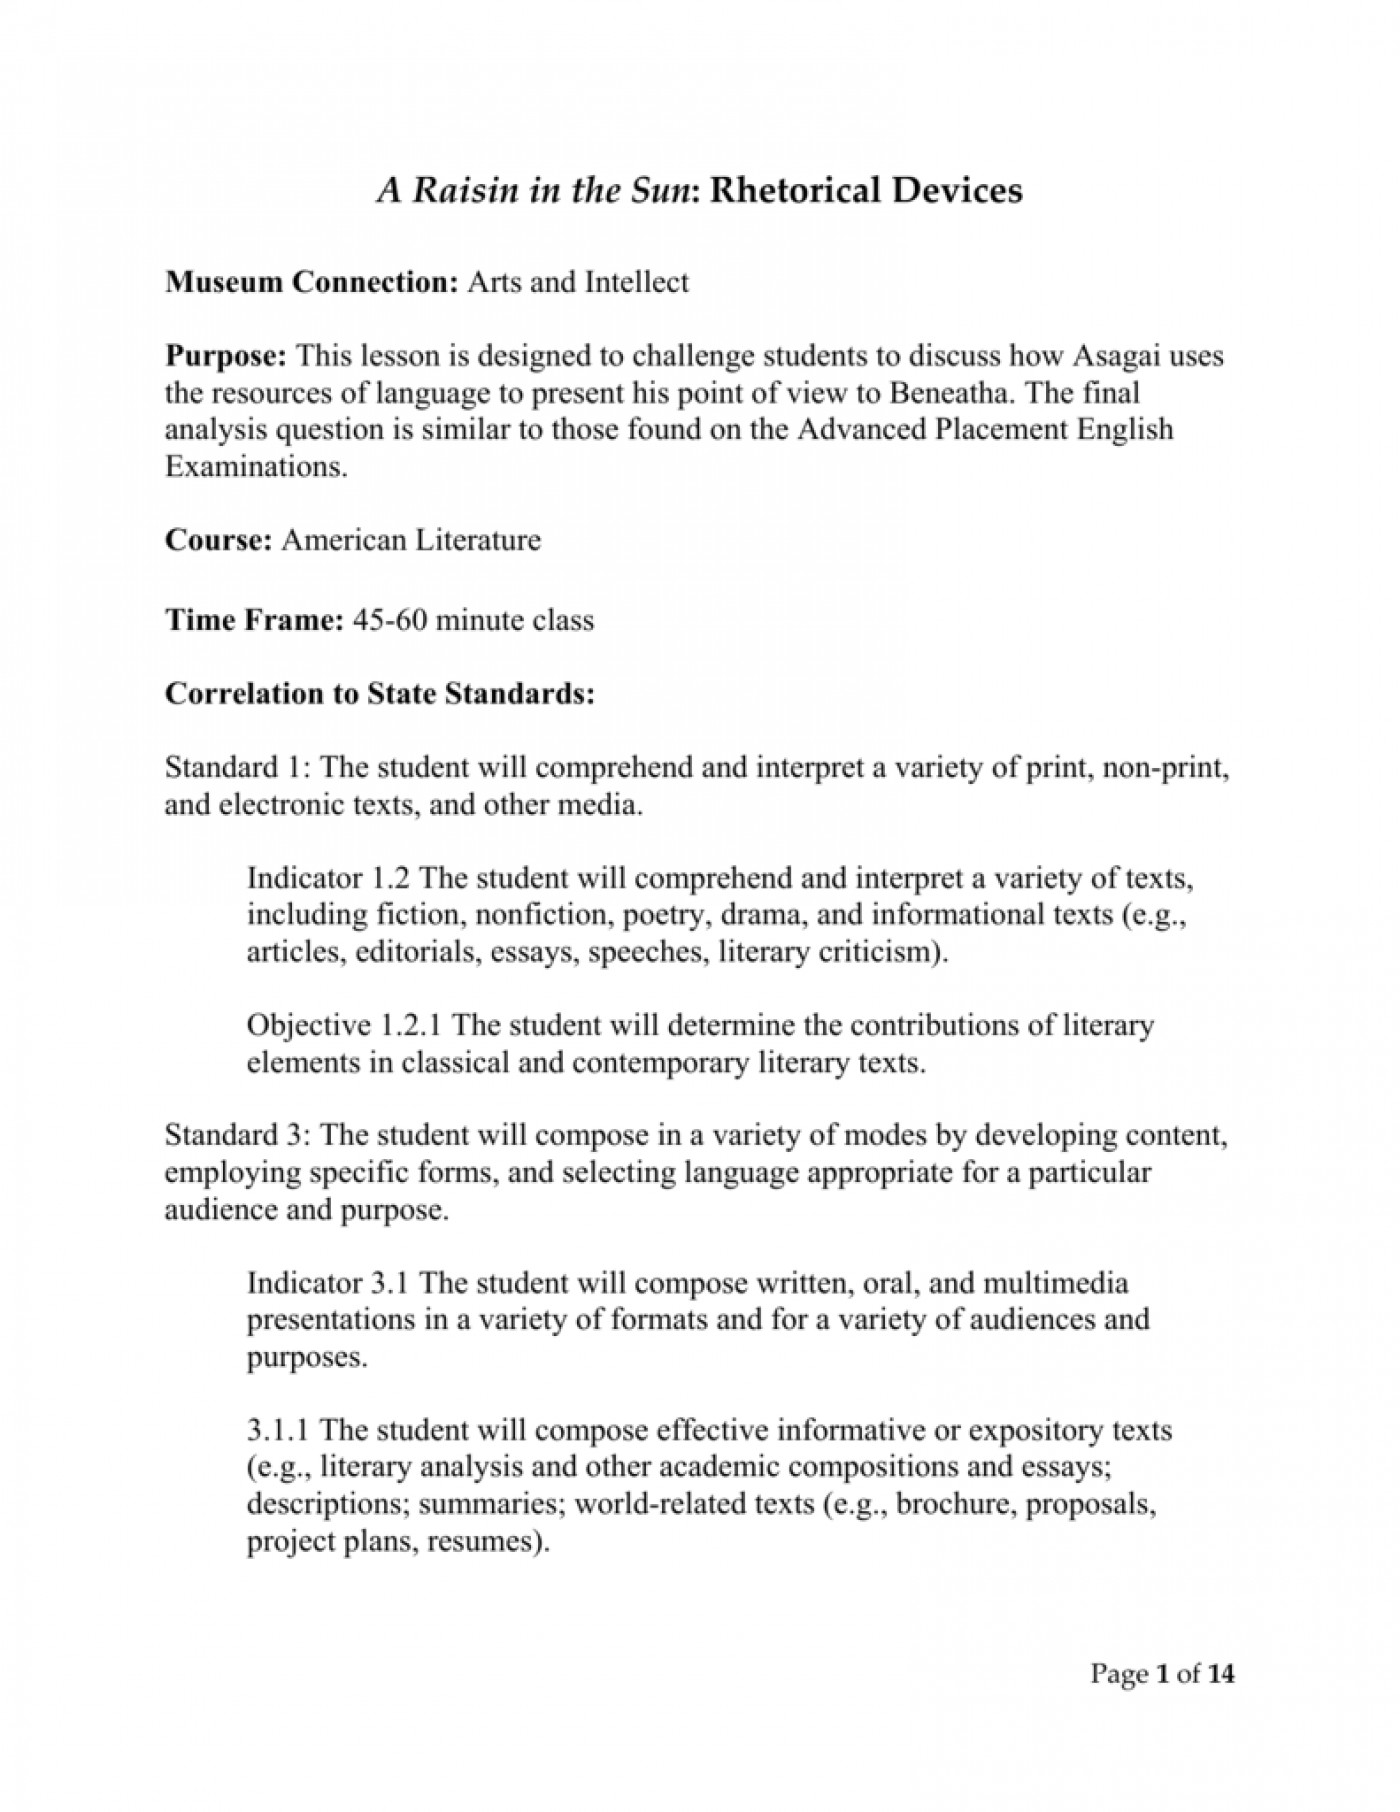 006 008718601 1 Essay Example Why Do Authors Use Rhetorical Devices In Frightening Essays Brainly 1400